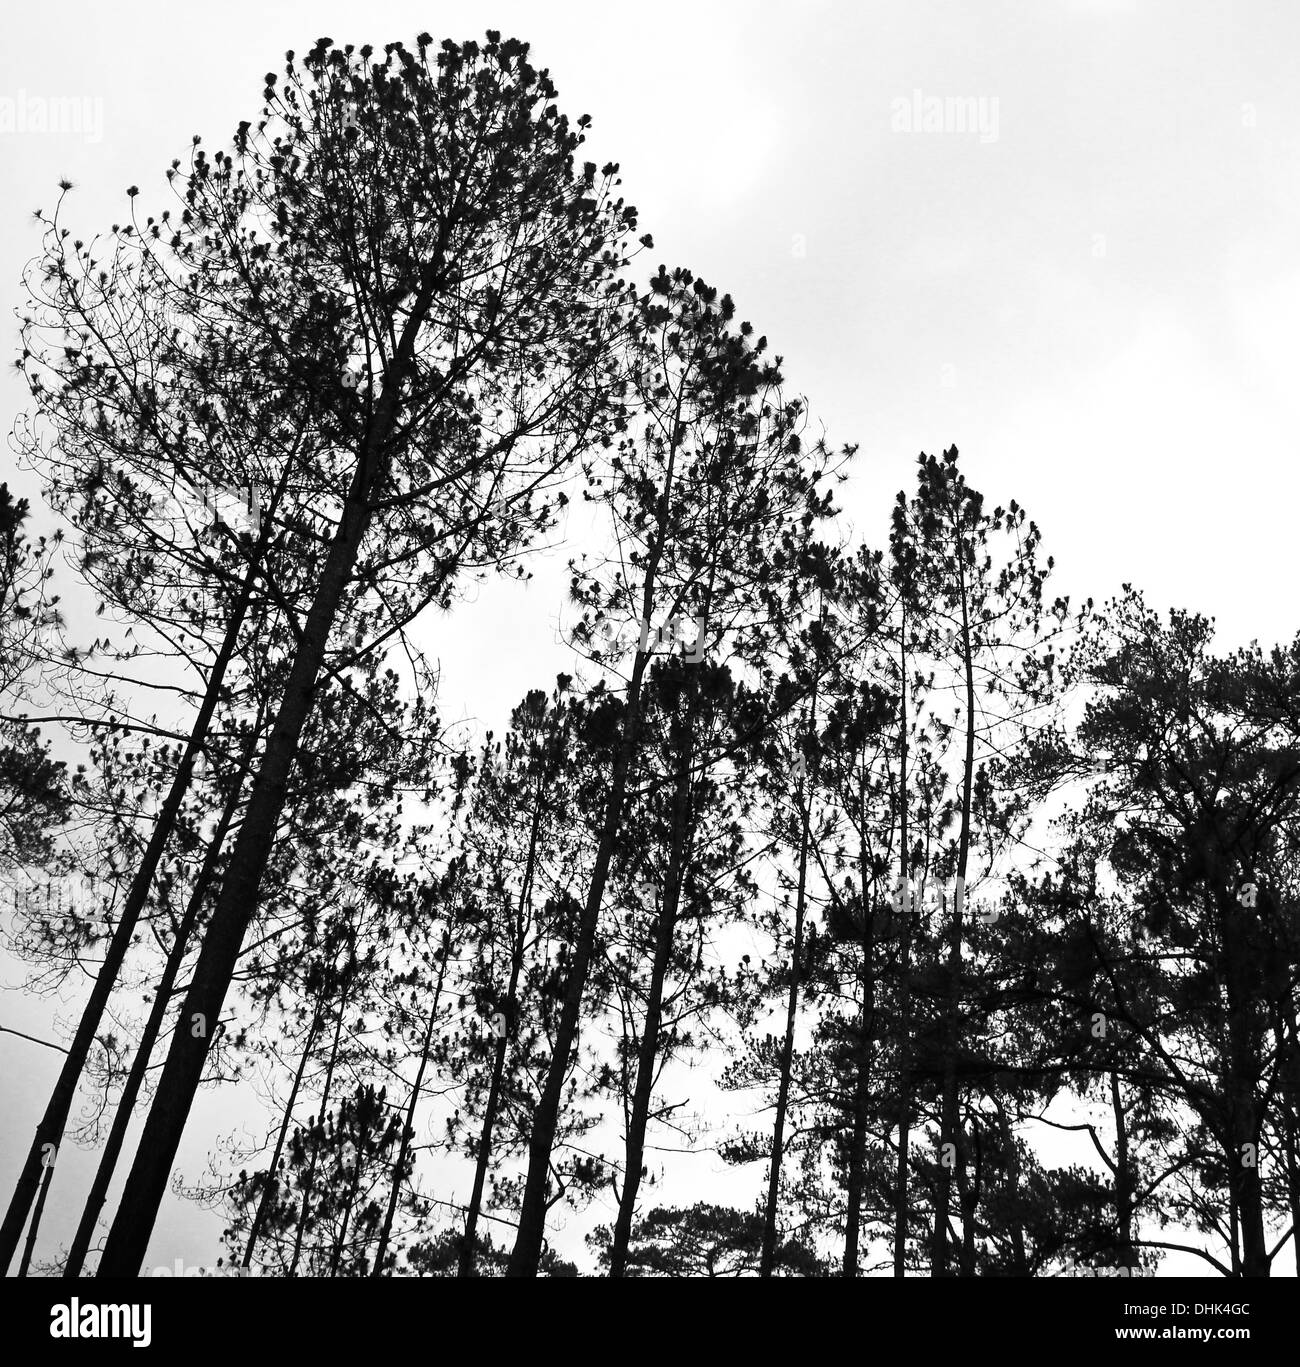 Abstract black and white image of tree tops in the forest. - Stock Image